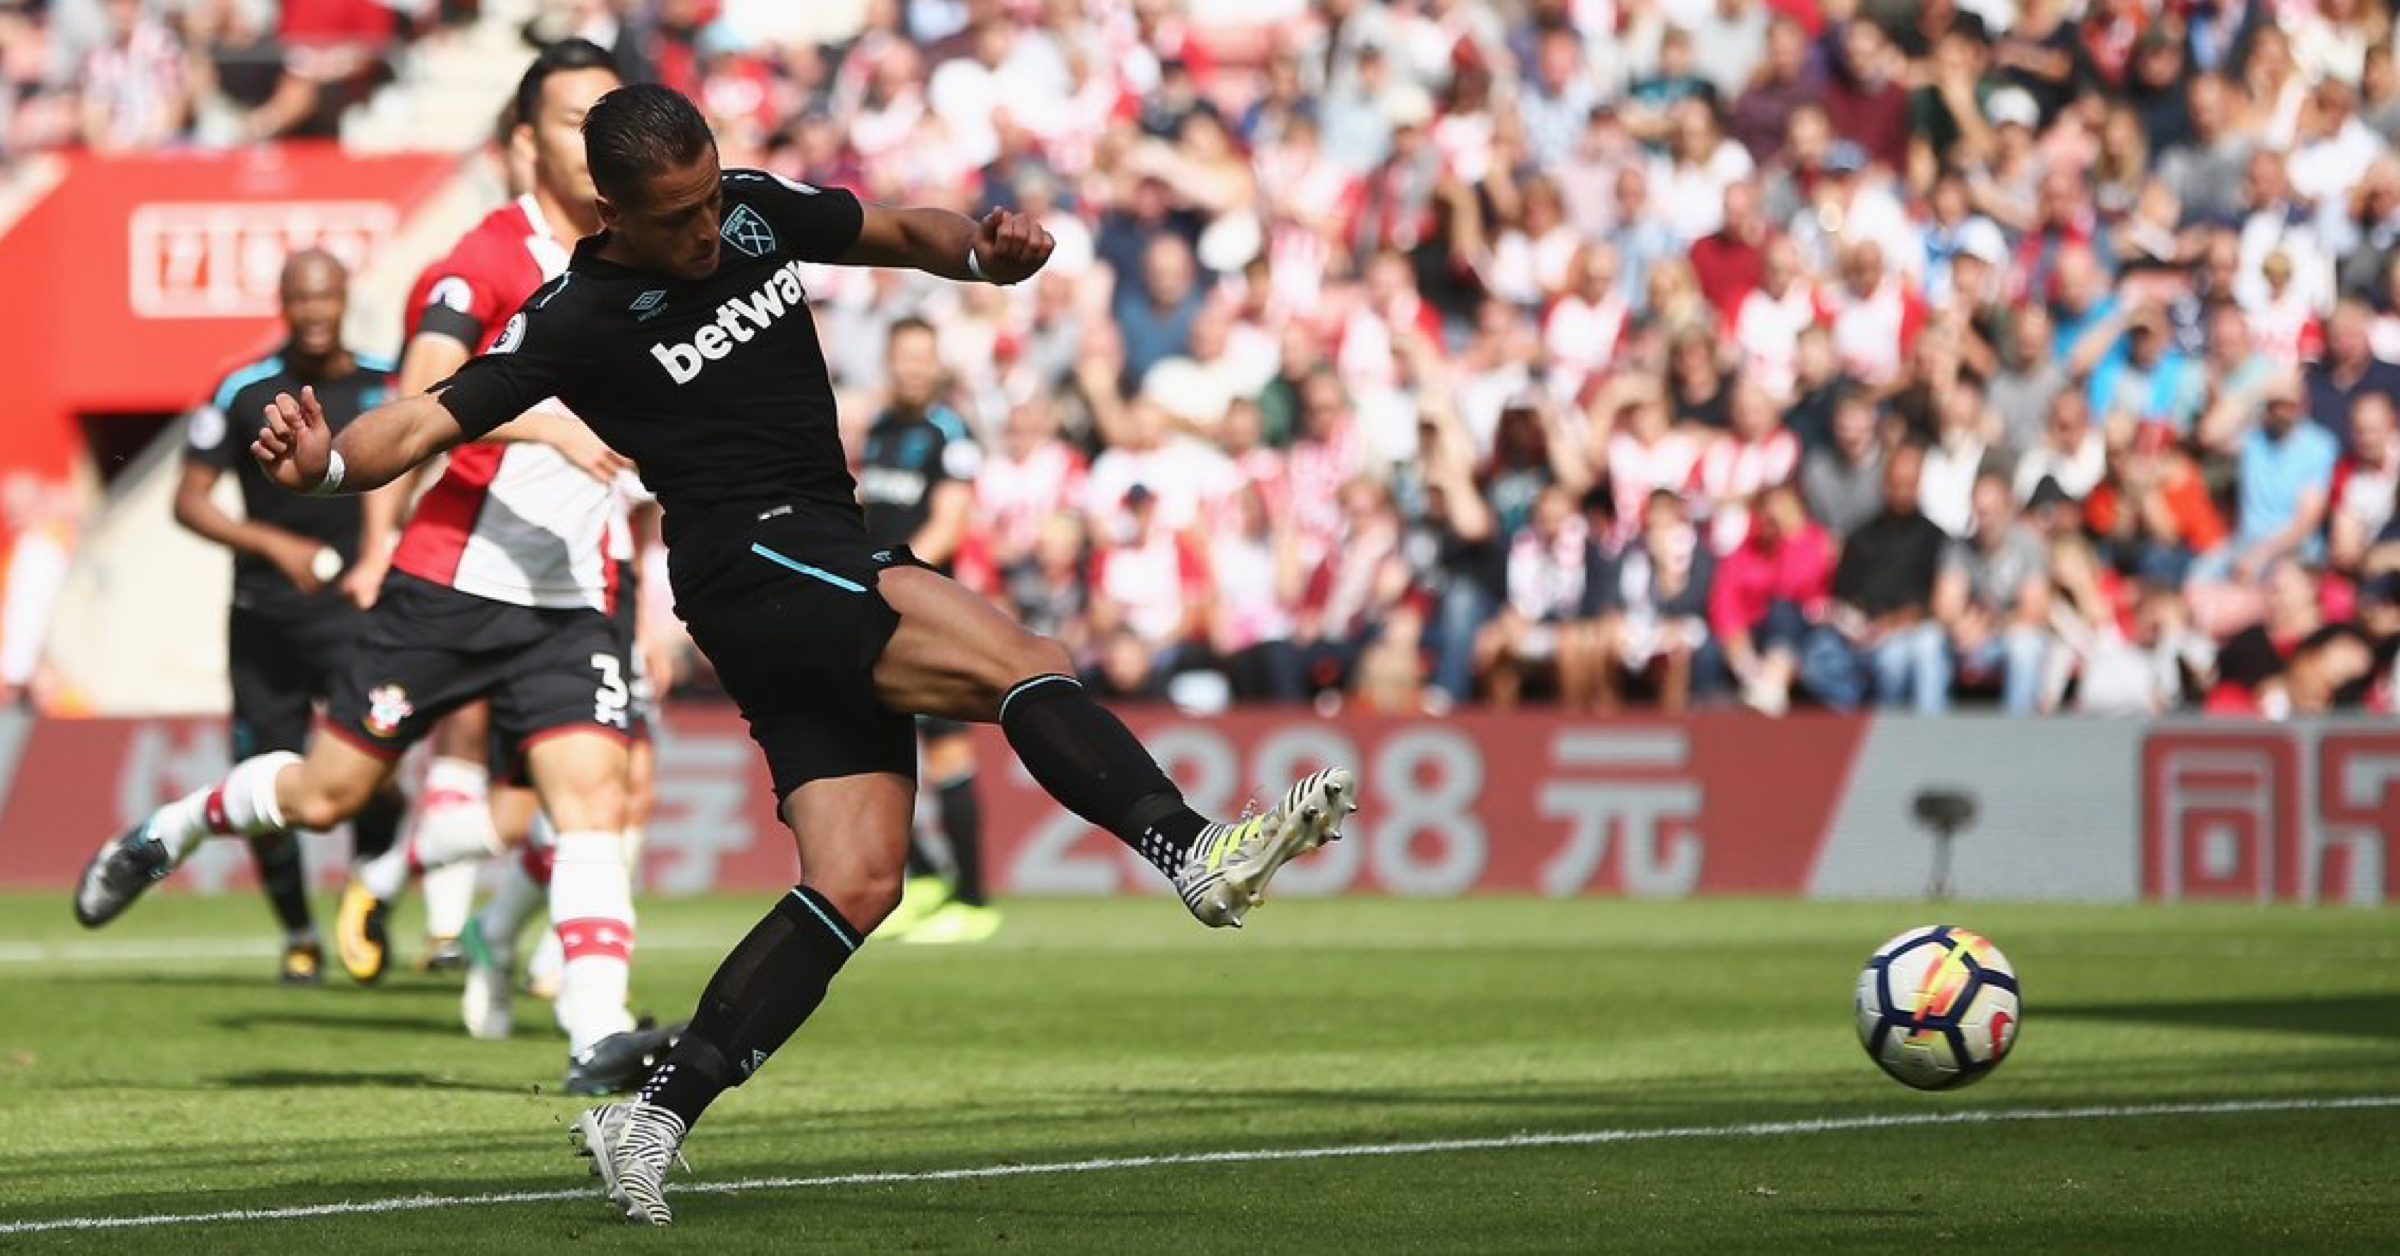 WATCH: Chicharito Scores His First Goal For West Ham In The Premier League